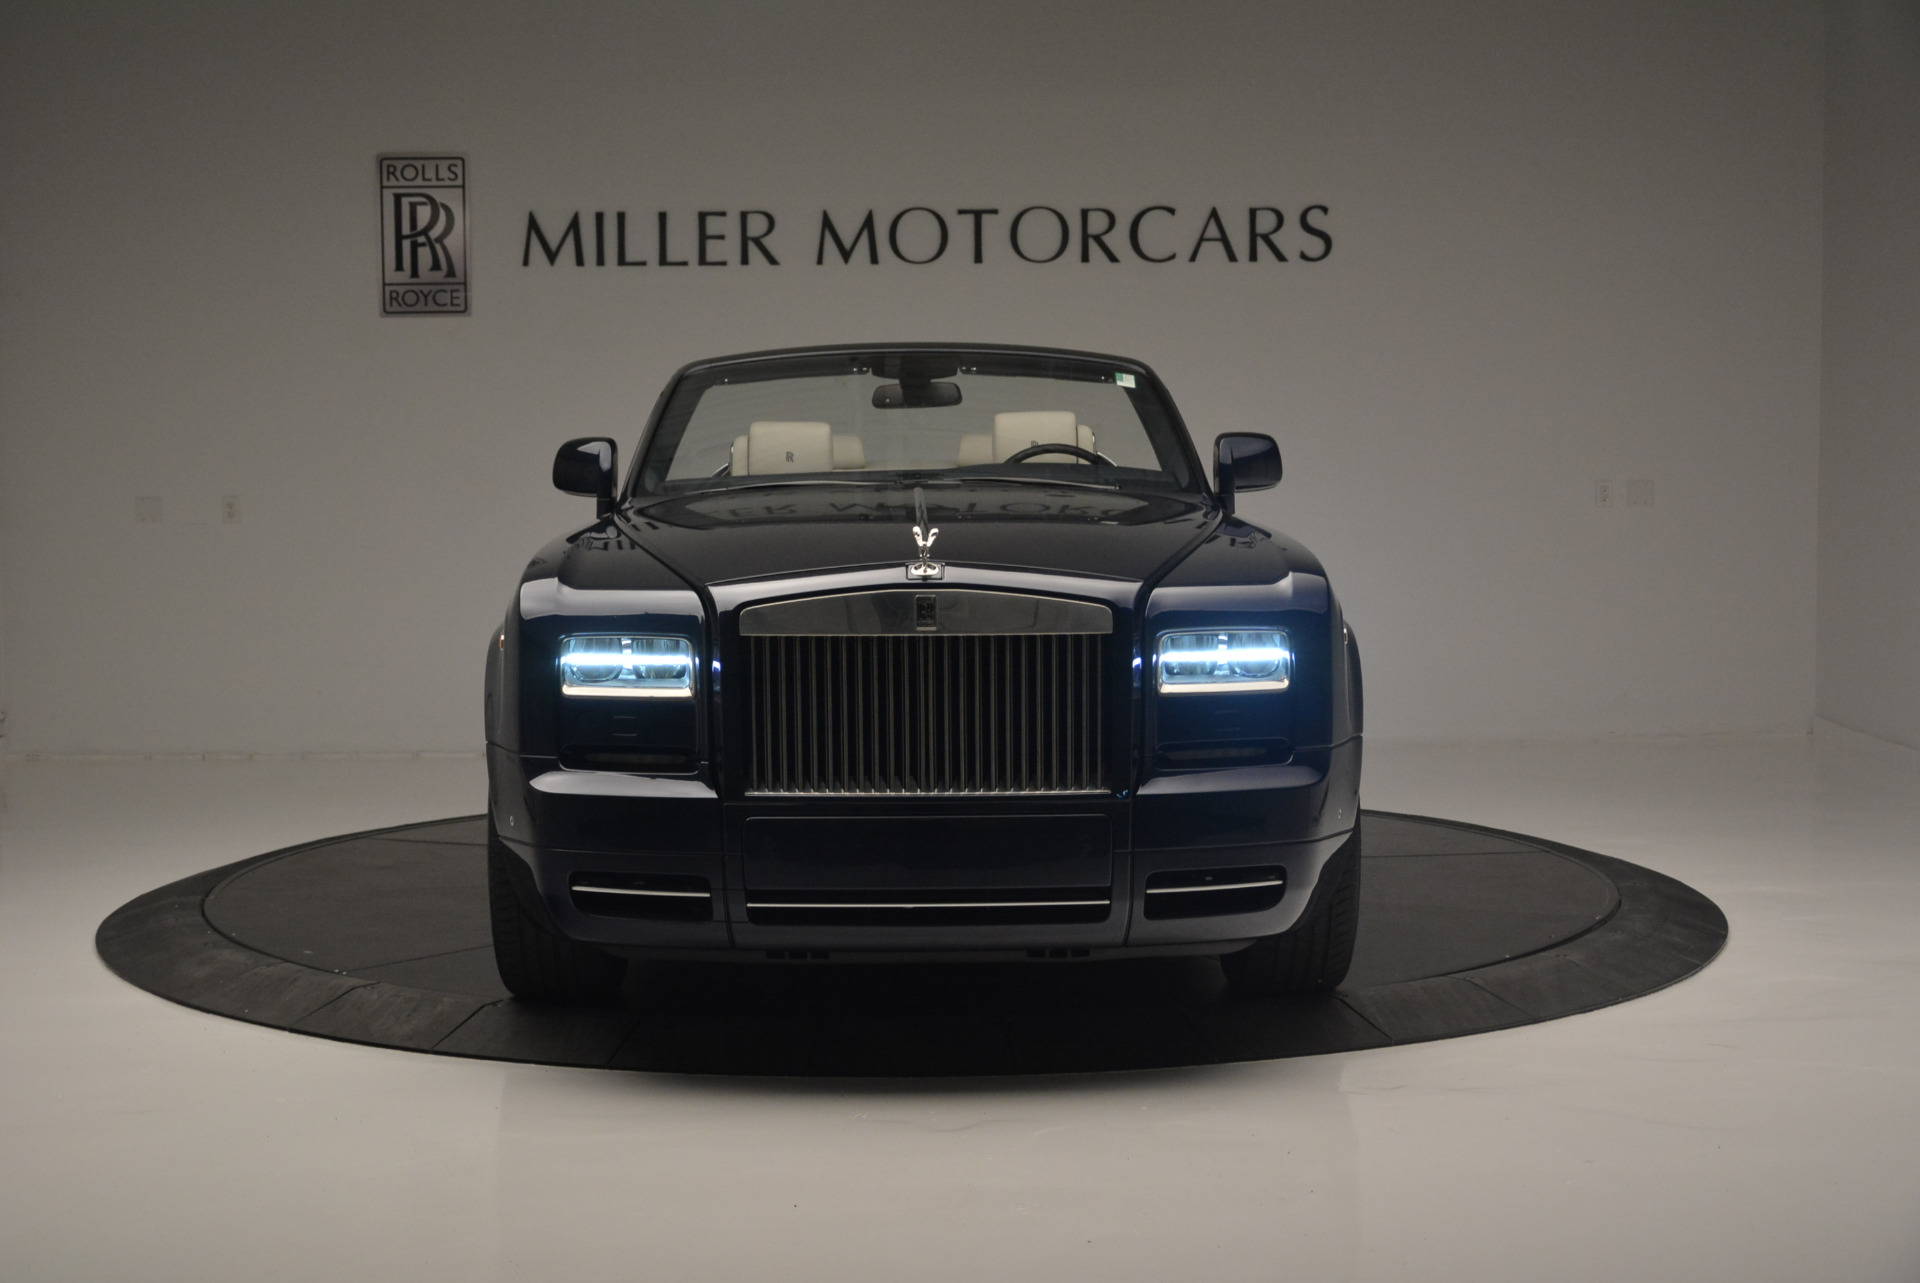 Used 2014 Rolls-Royce Phantom Drophead Coupe  For Sale In Greenwich, CT. Alfa Romeo of Greenwich, 7644 2356_p8